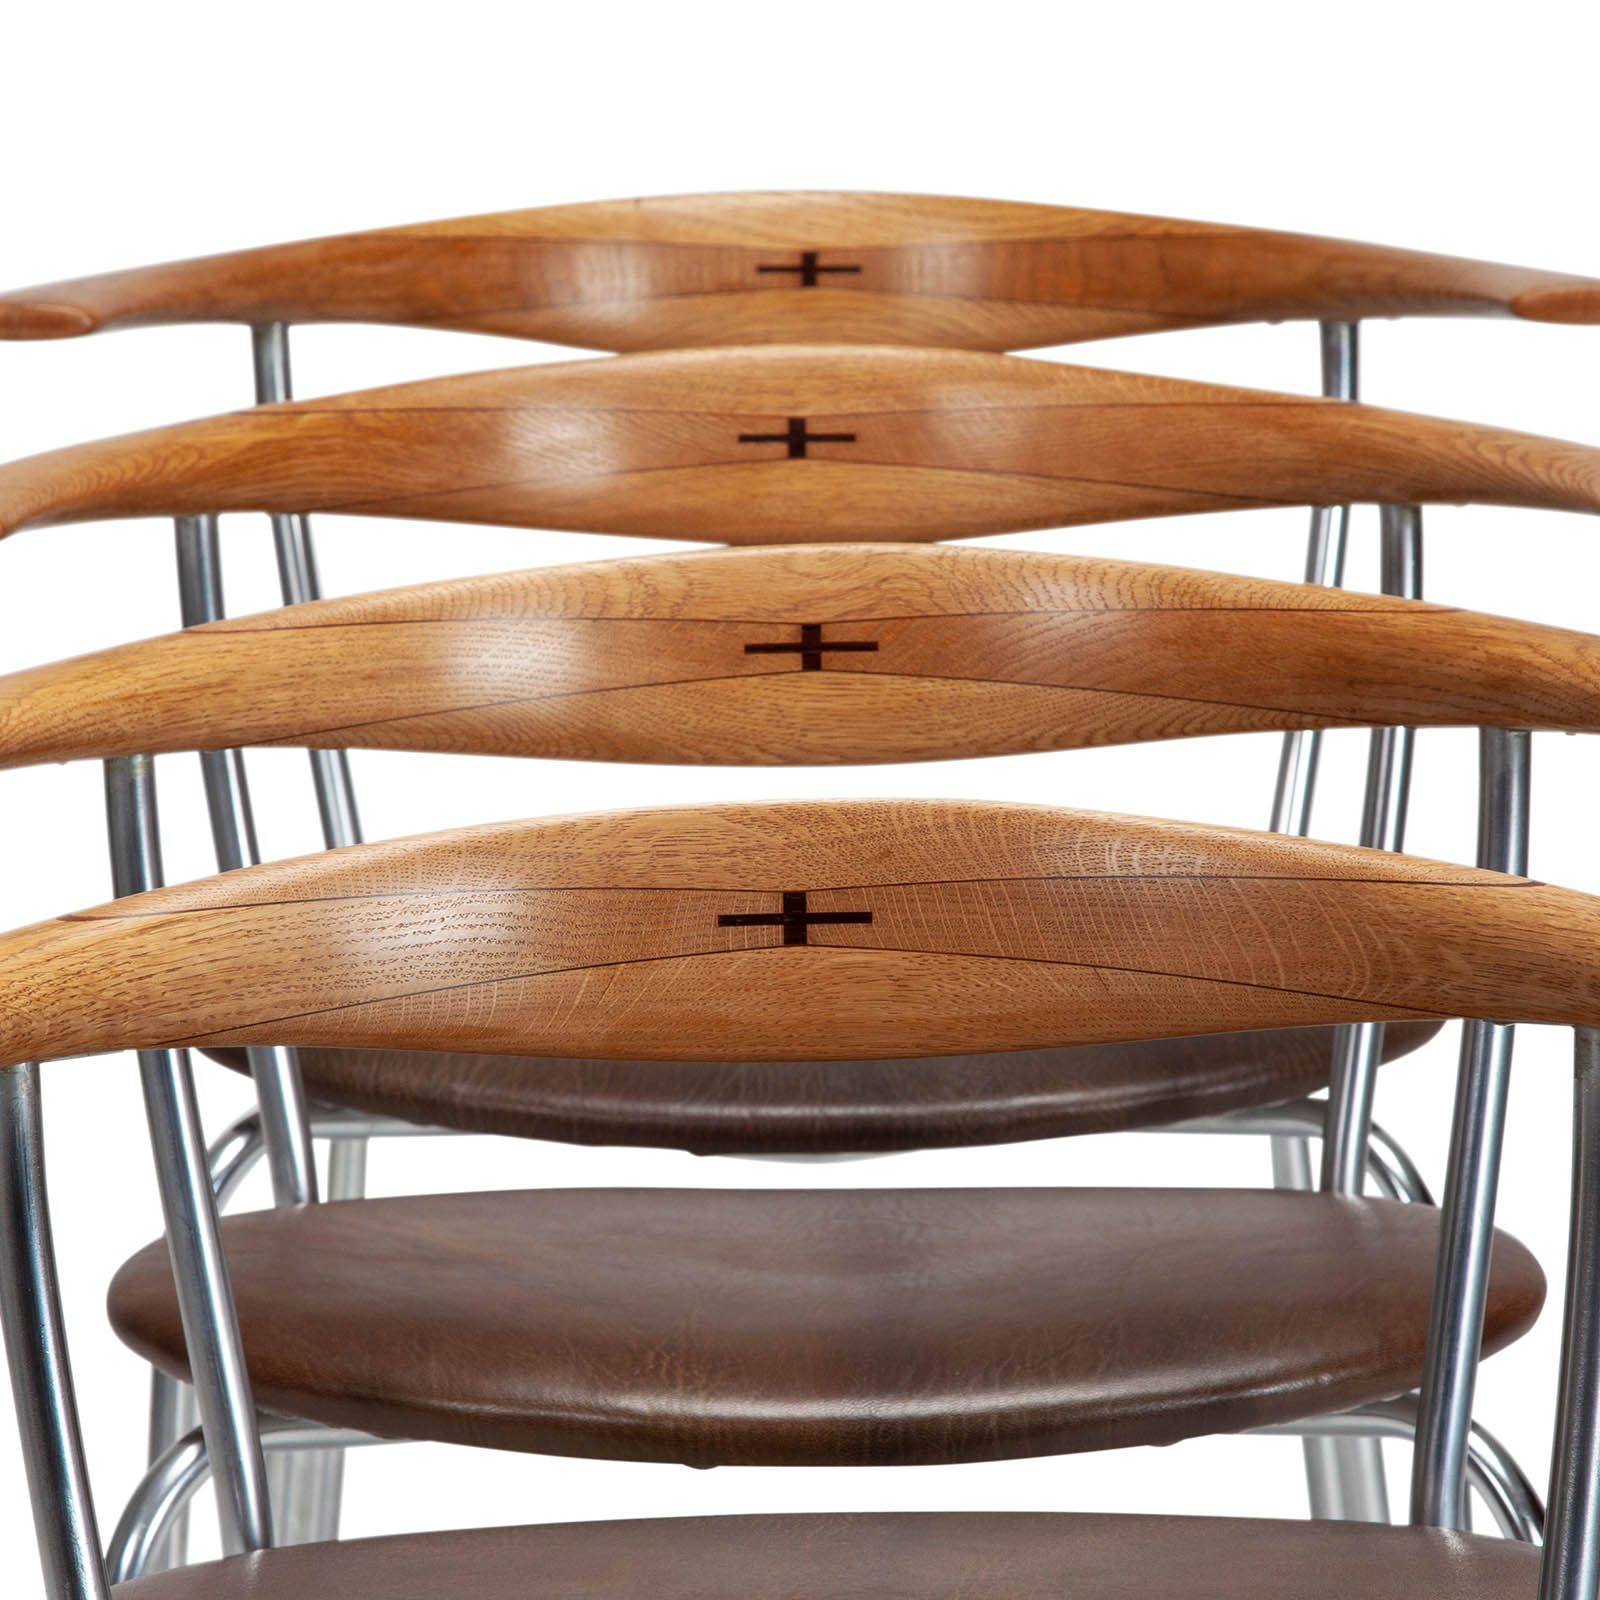 A set of JH701 armchairs